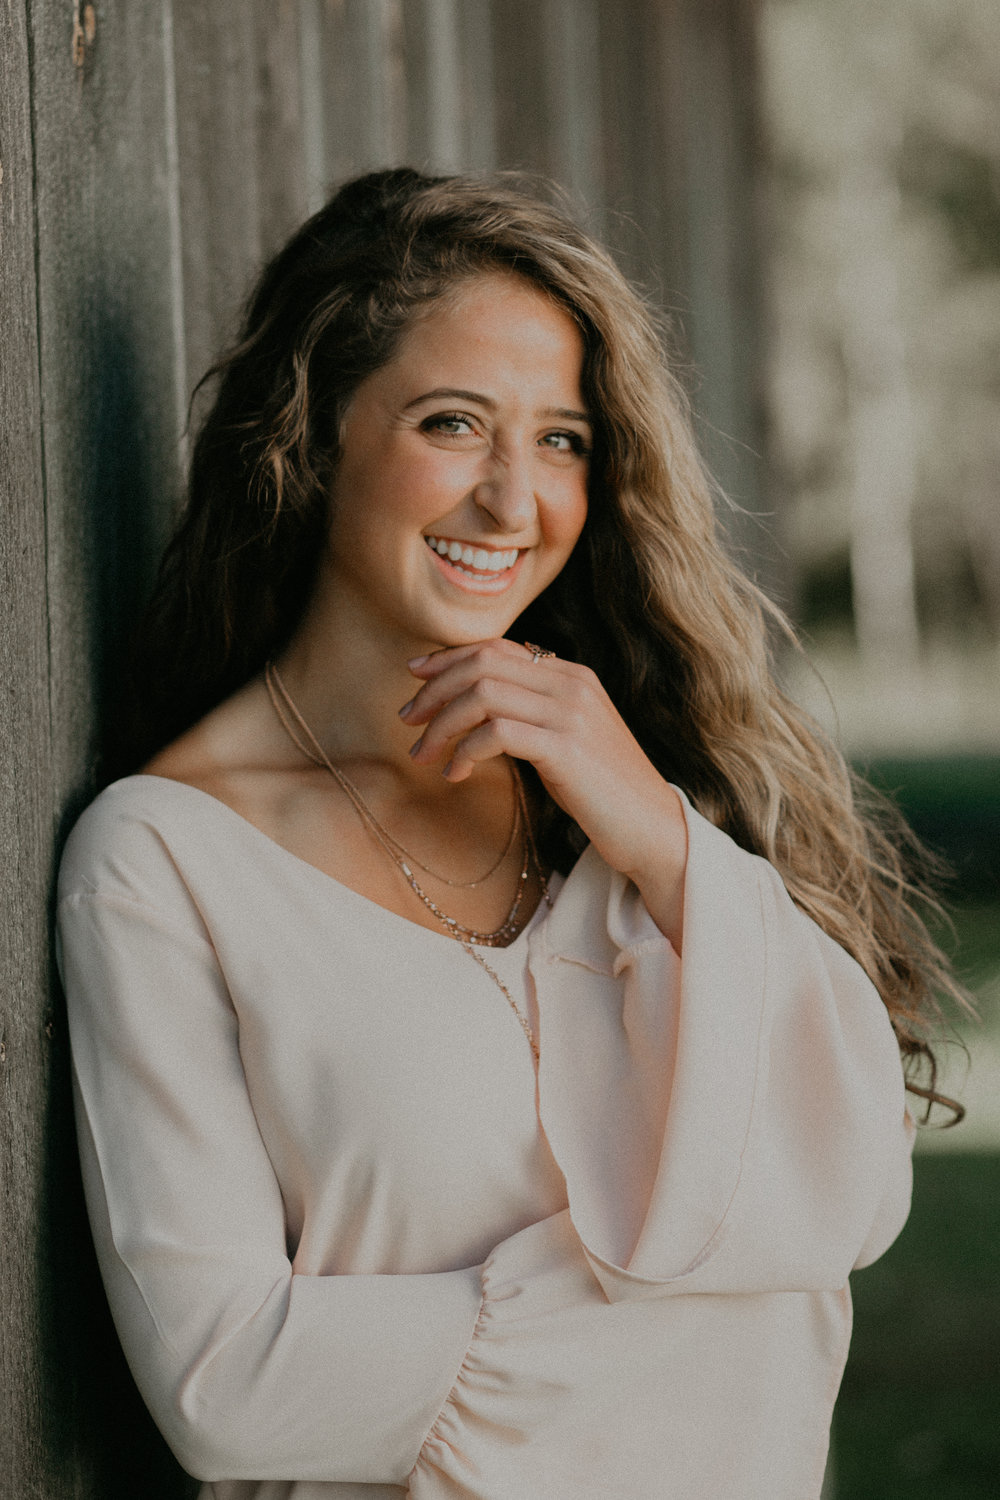 Dara Stichert from Chili WI poses at Stichert Farms for her senior pictures